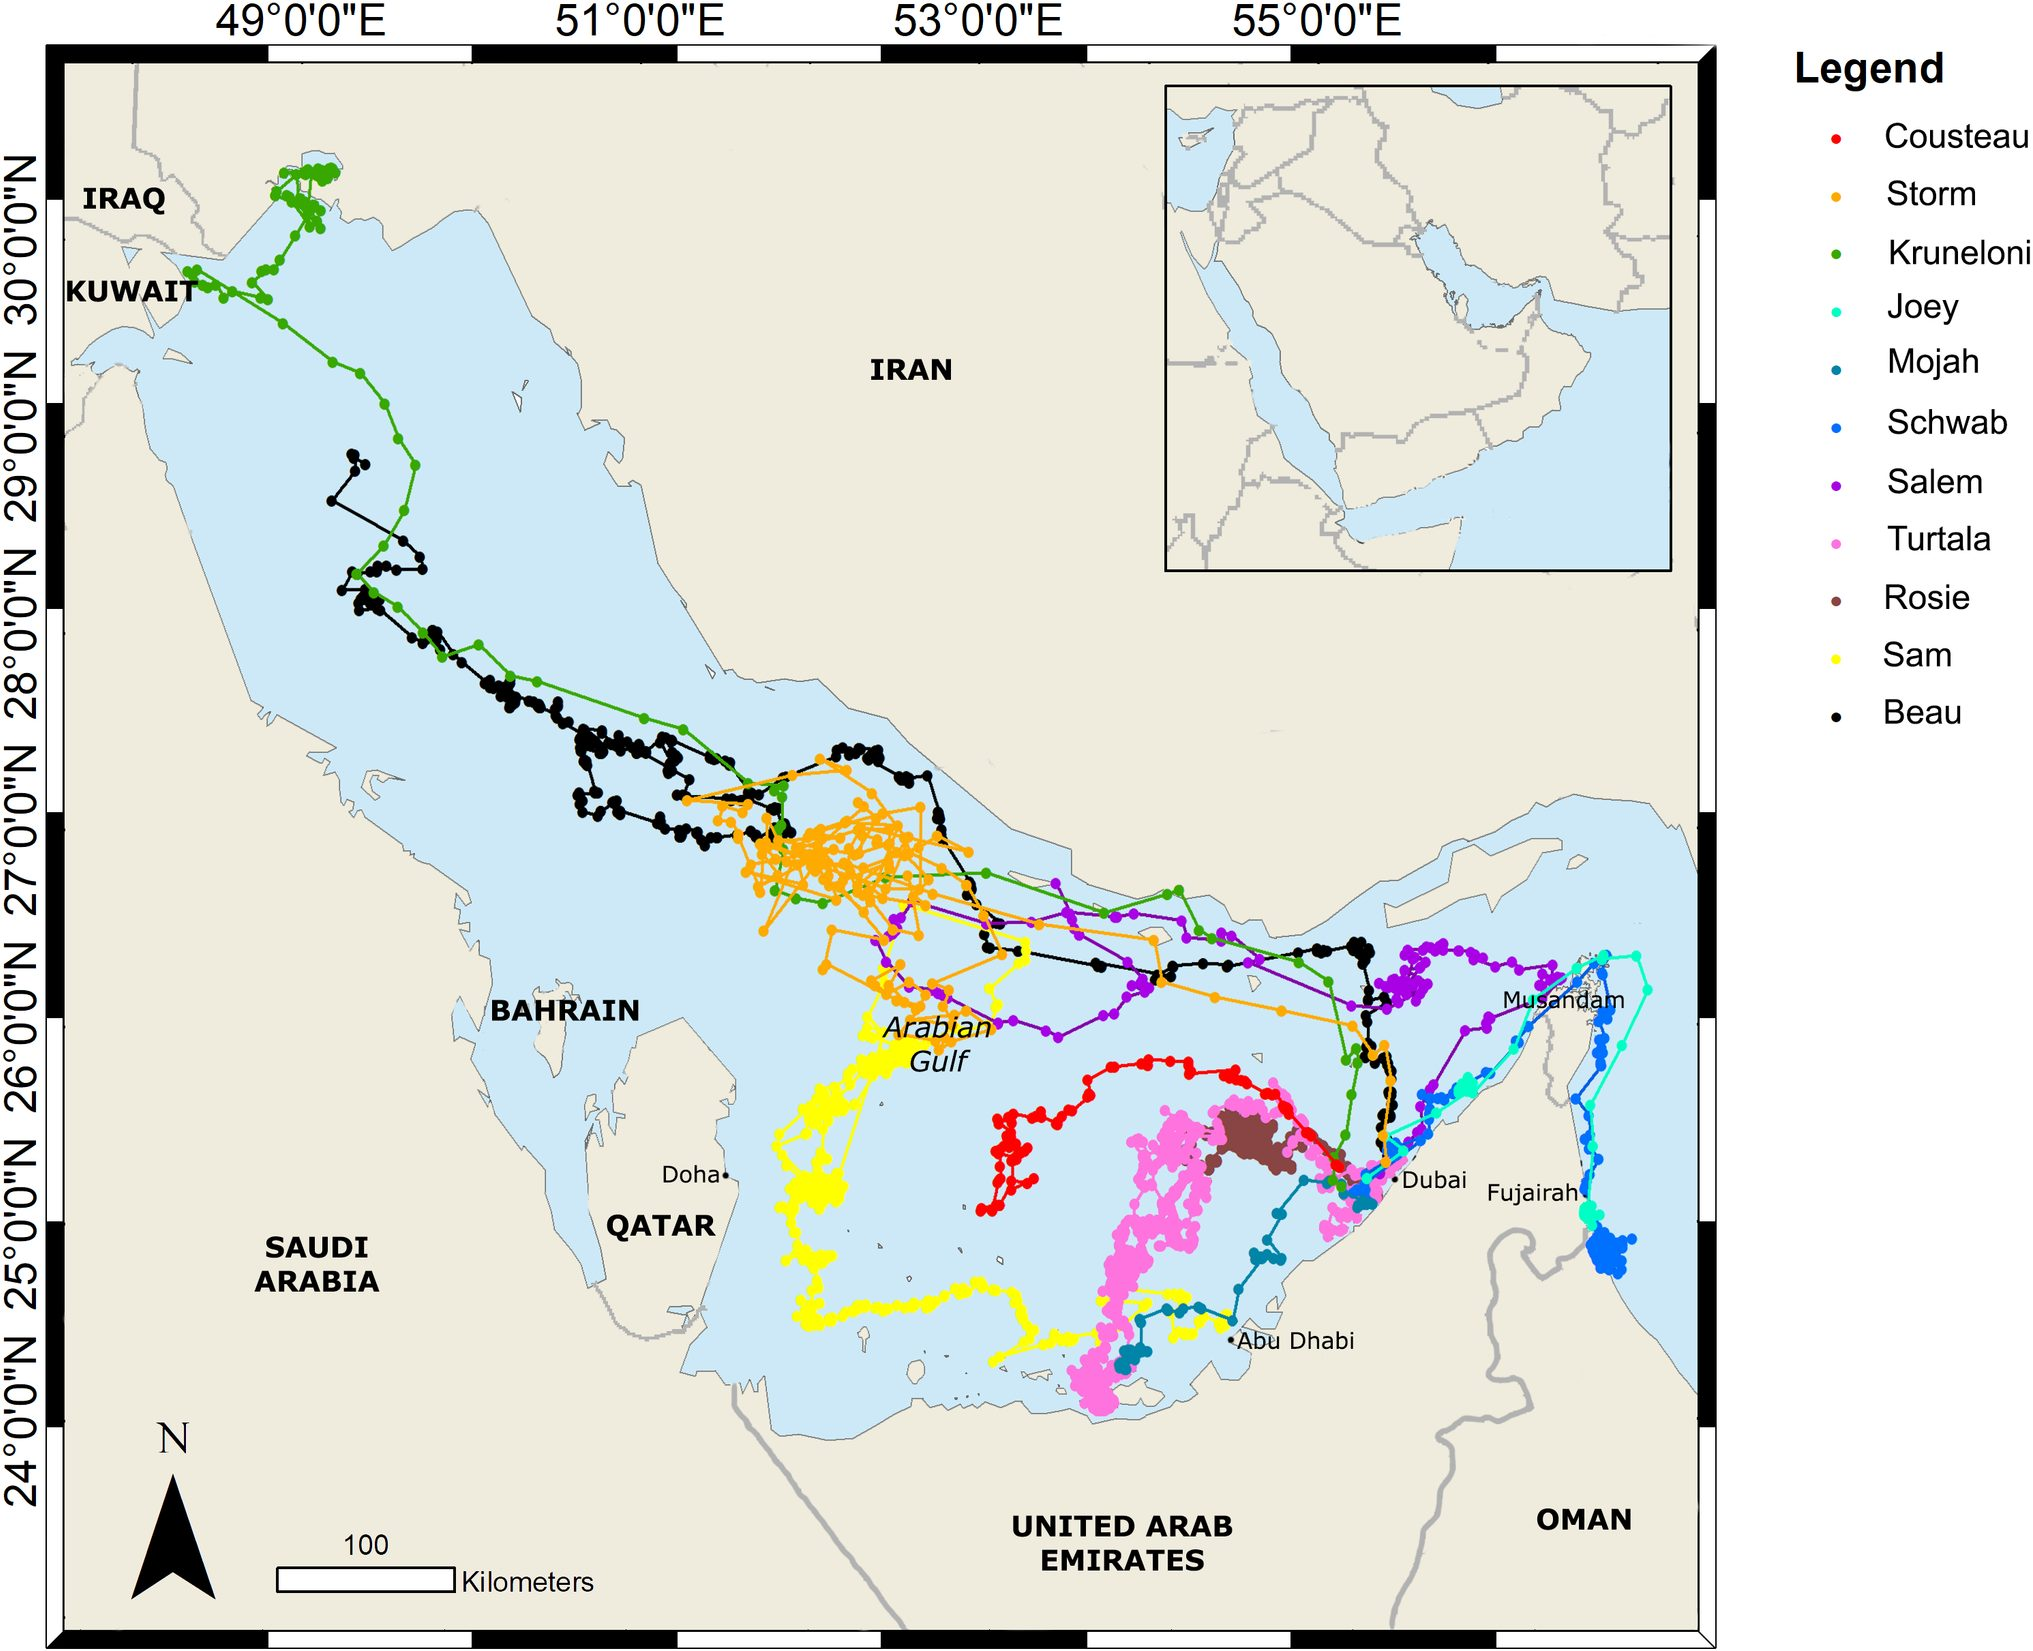 Horizontal movements of eleven rehabilitated loggerhead turtles satellite tagged and released in the United Arab Emirates during this study; the loggerheads move at a larger range than the hawksbill (from [Robinson et al., 2021], credit Dubai Turtle Rehabilitation Project)